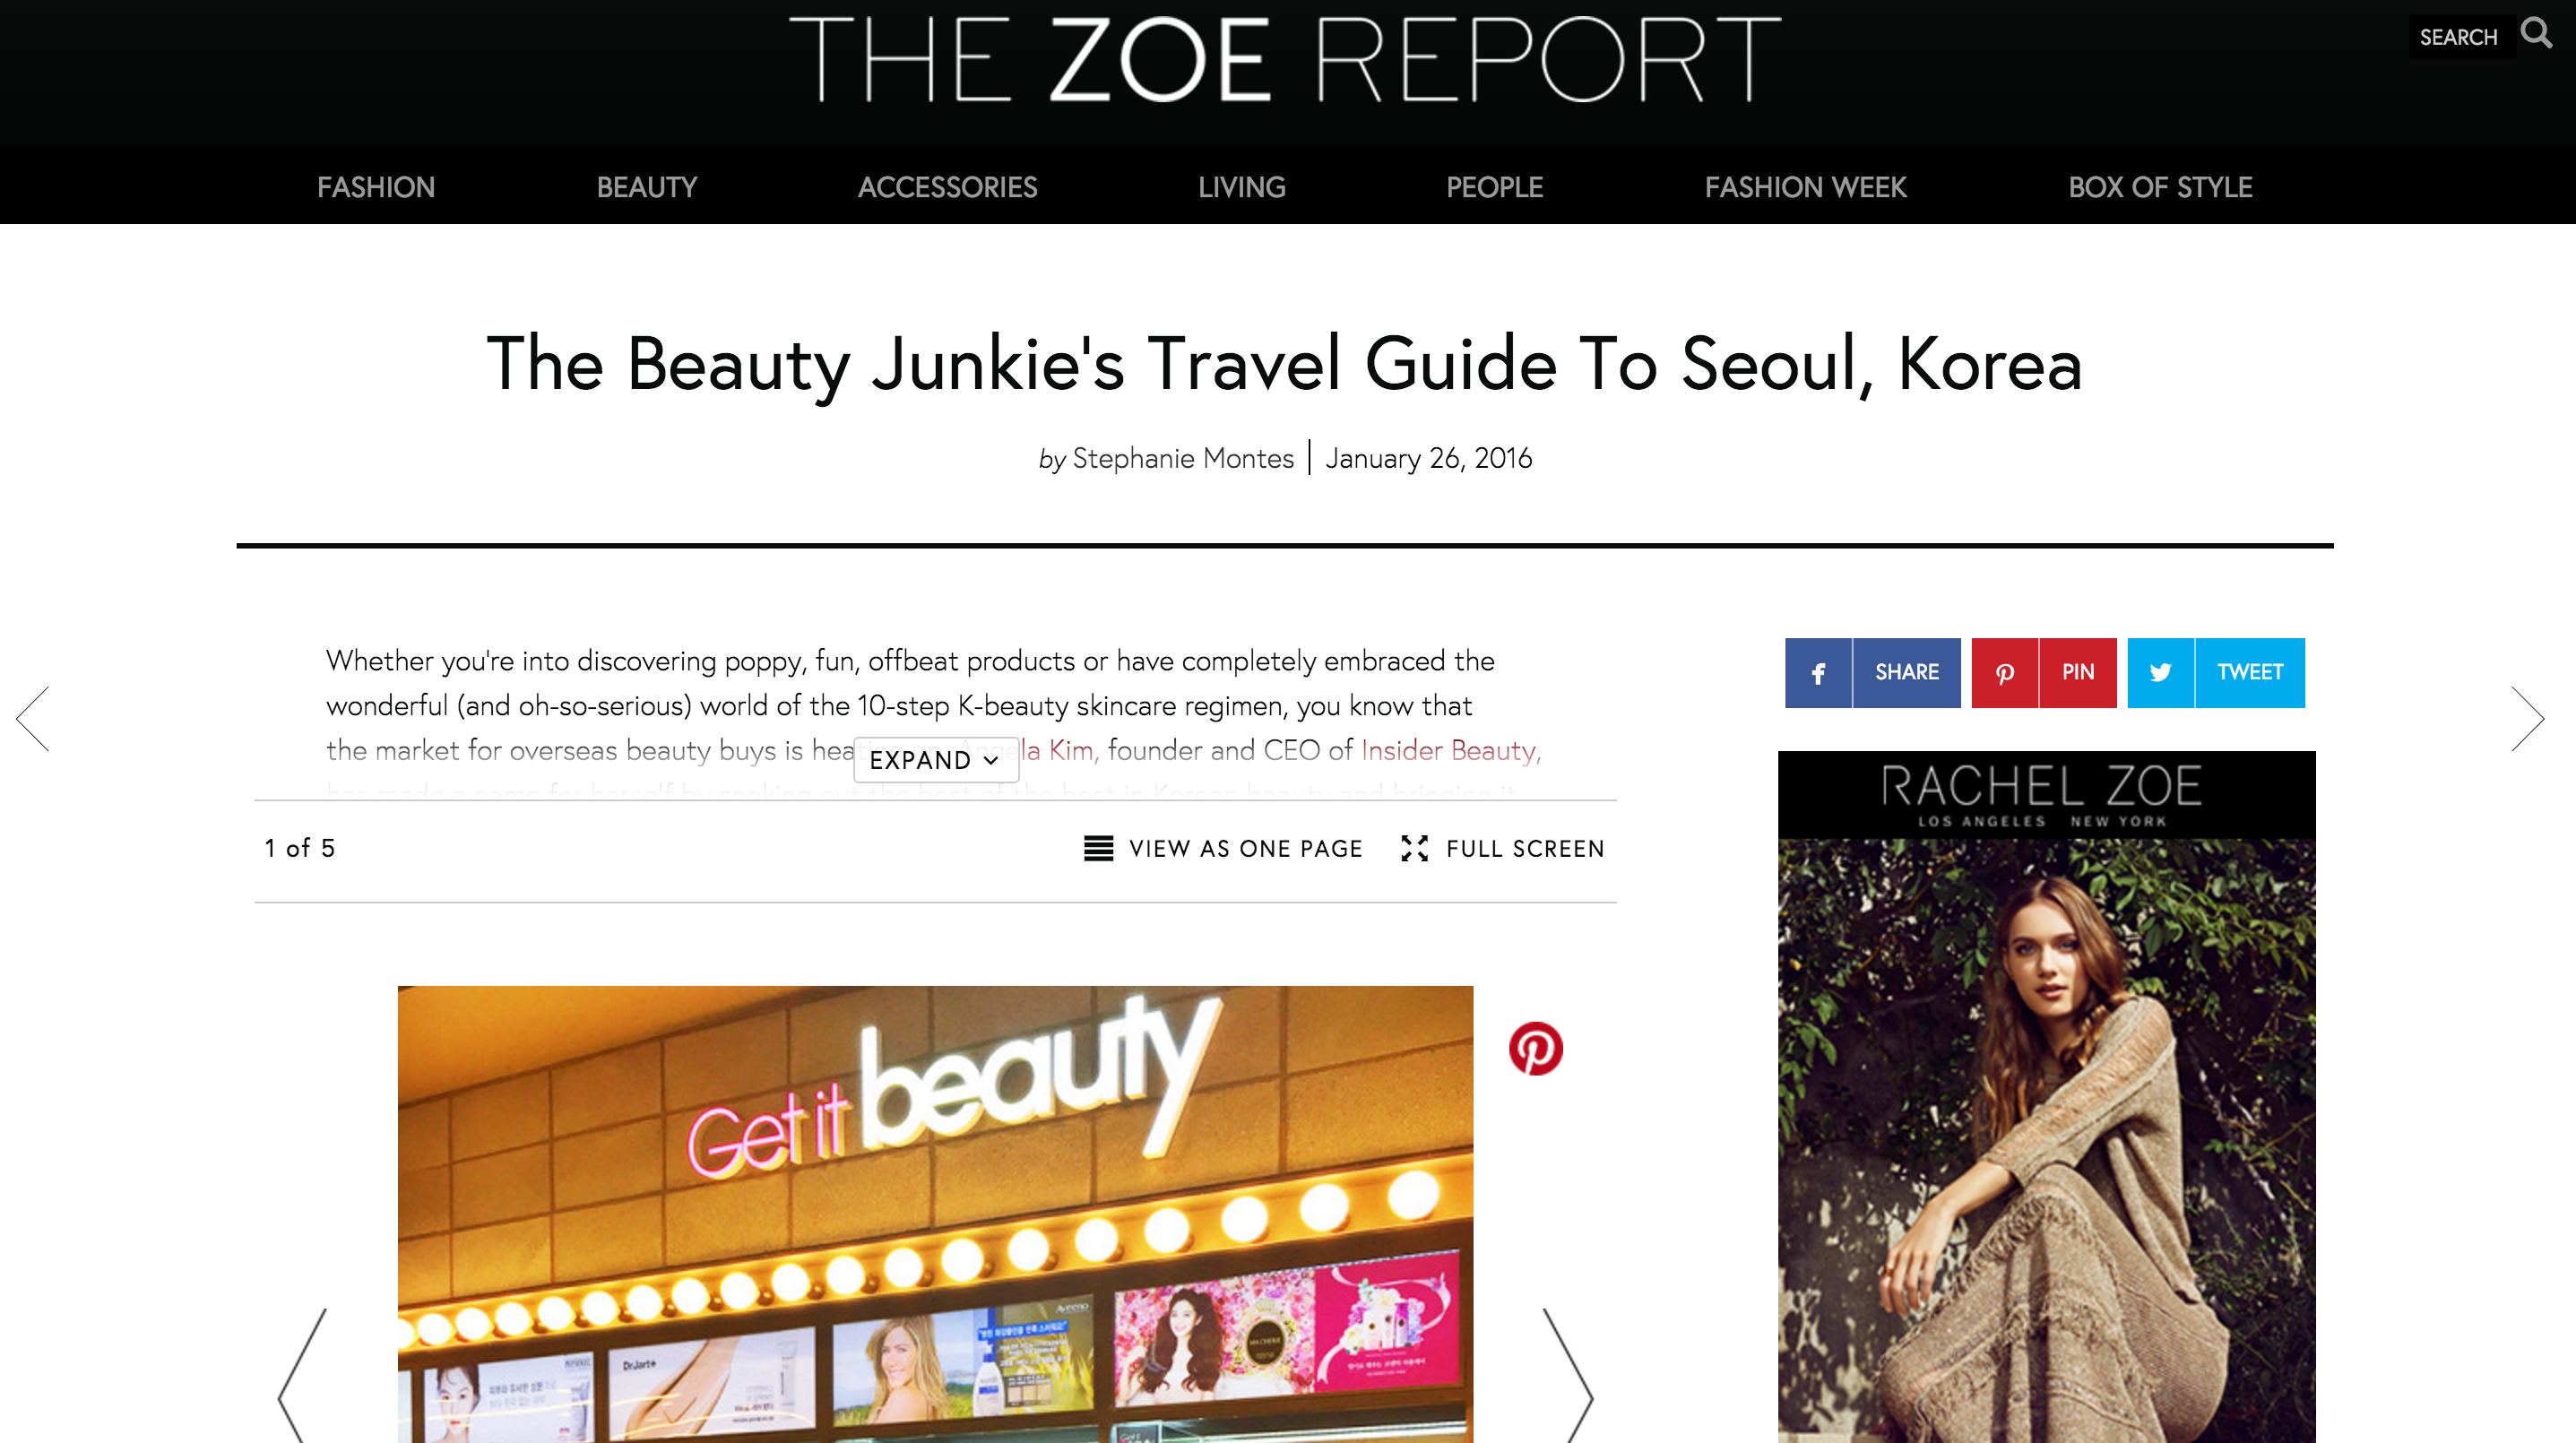 who what wear, wear pieces you already own, ways to wear pieces you already own, la times, expired dates vs. sell by dates, best beauty seoul, best beauty korea, best beauty seoul korea, the zoe report, the zoe report beauty, the zoe report korean, beauty guide seoul, beauty guide korea, beauty guide korean, extrovert, introvert, extroverted introvert, extrovert vs. introvert, annabashedly, sugar cloth, sugar flower cake, diy sugar cloth, diy sugar flower cake, my domaine, damsel in dior my domaine, damsel in dior house, damsel in dior makeover, damsel in dior before after, damsel in dior home, top 100 places to eat, top 100 restaurants, top 100 places to eat us, top 100 restaurants us, top 100 places to eat 2016, top 100 restaurants 2016, yelp top 100 places to eat, yelp to 100 restaurants, rent vs. buy calculator, rent vs. buy, smart asset calculator, smart asset rent vs. buy, fashion week street style, fashion week street style 2016, new york fashion week street style, new york fashion week street style 2016, racked fashion week street style, westminster dog show video 2016, westminster papillon, westminster dog show papillon, westminster dog show papillon 2016, westminster dog show papillon video 2016